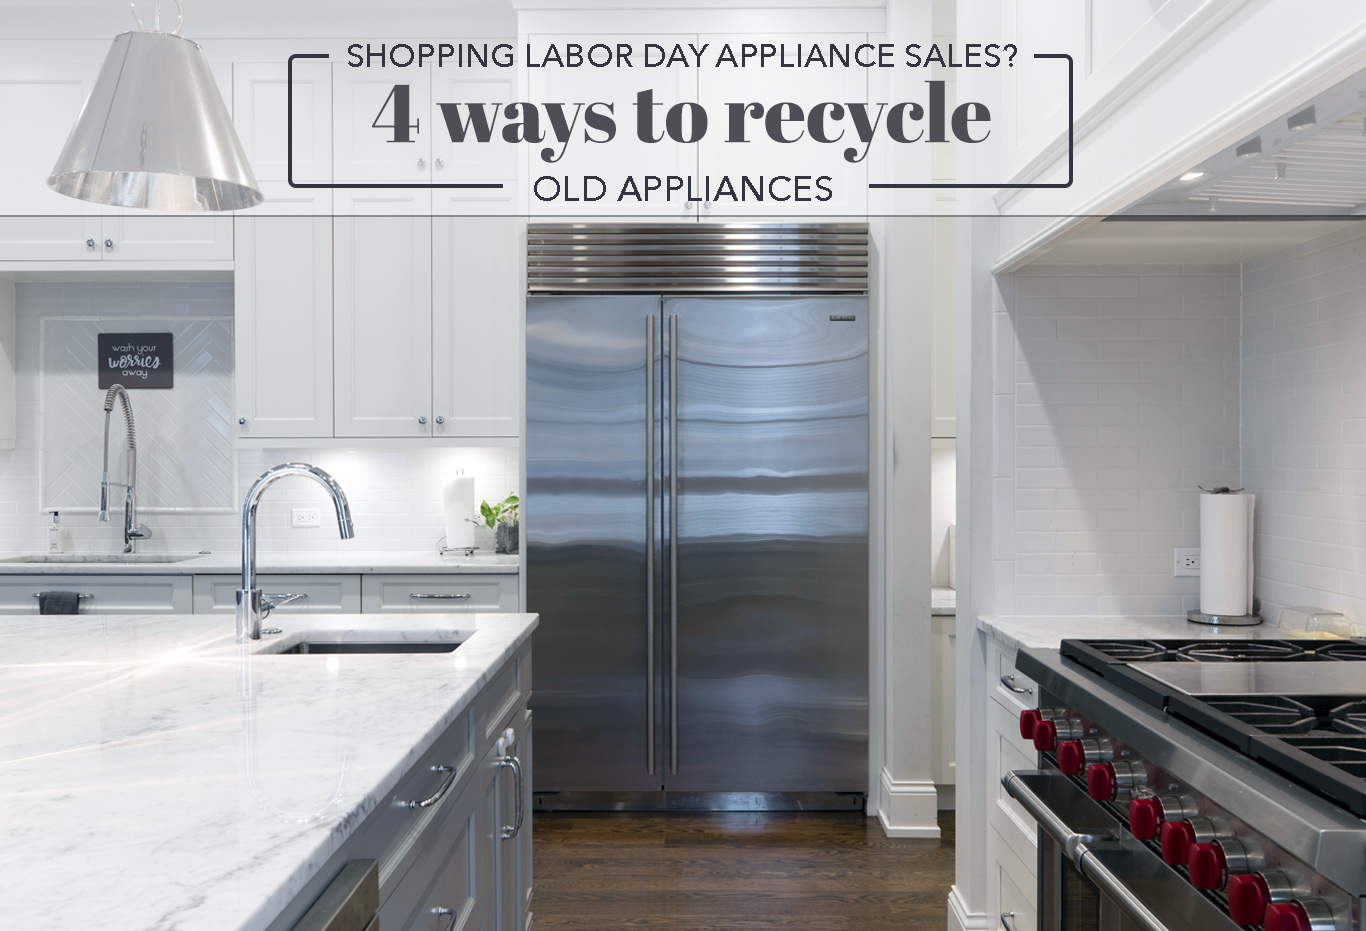 4 ways to recycle large kitchen appliances